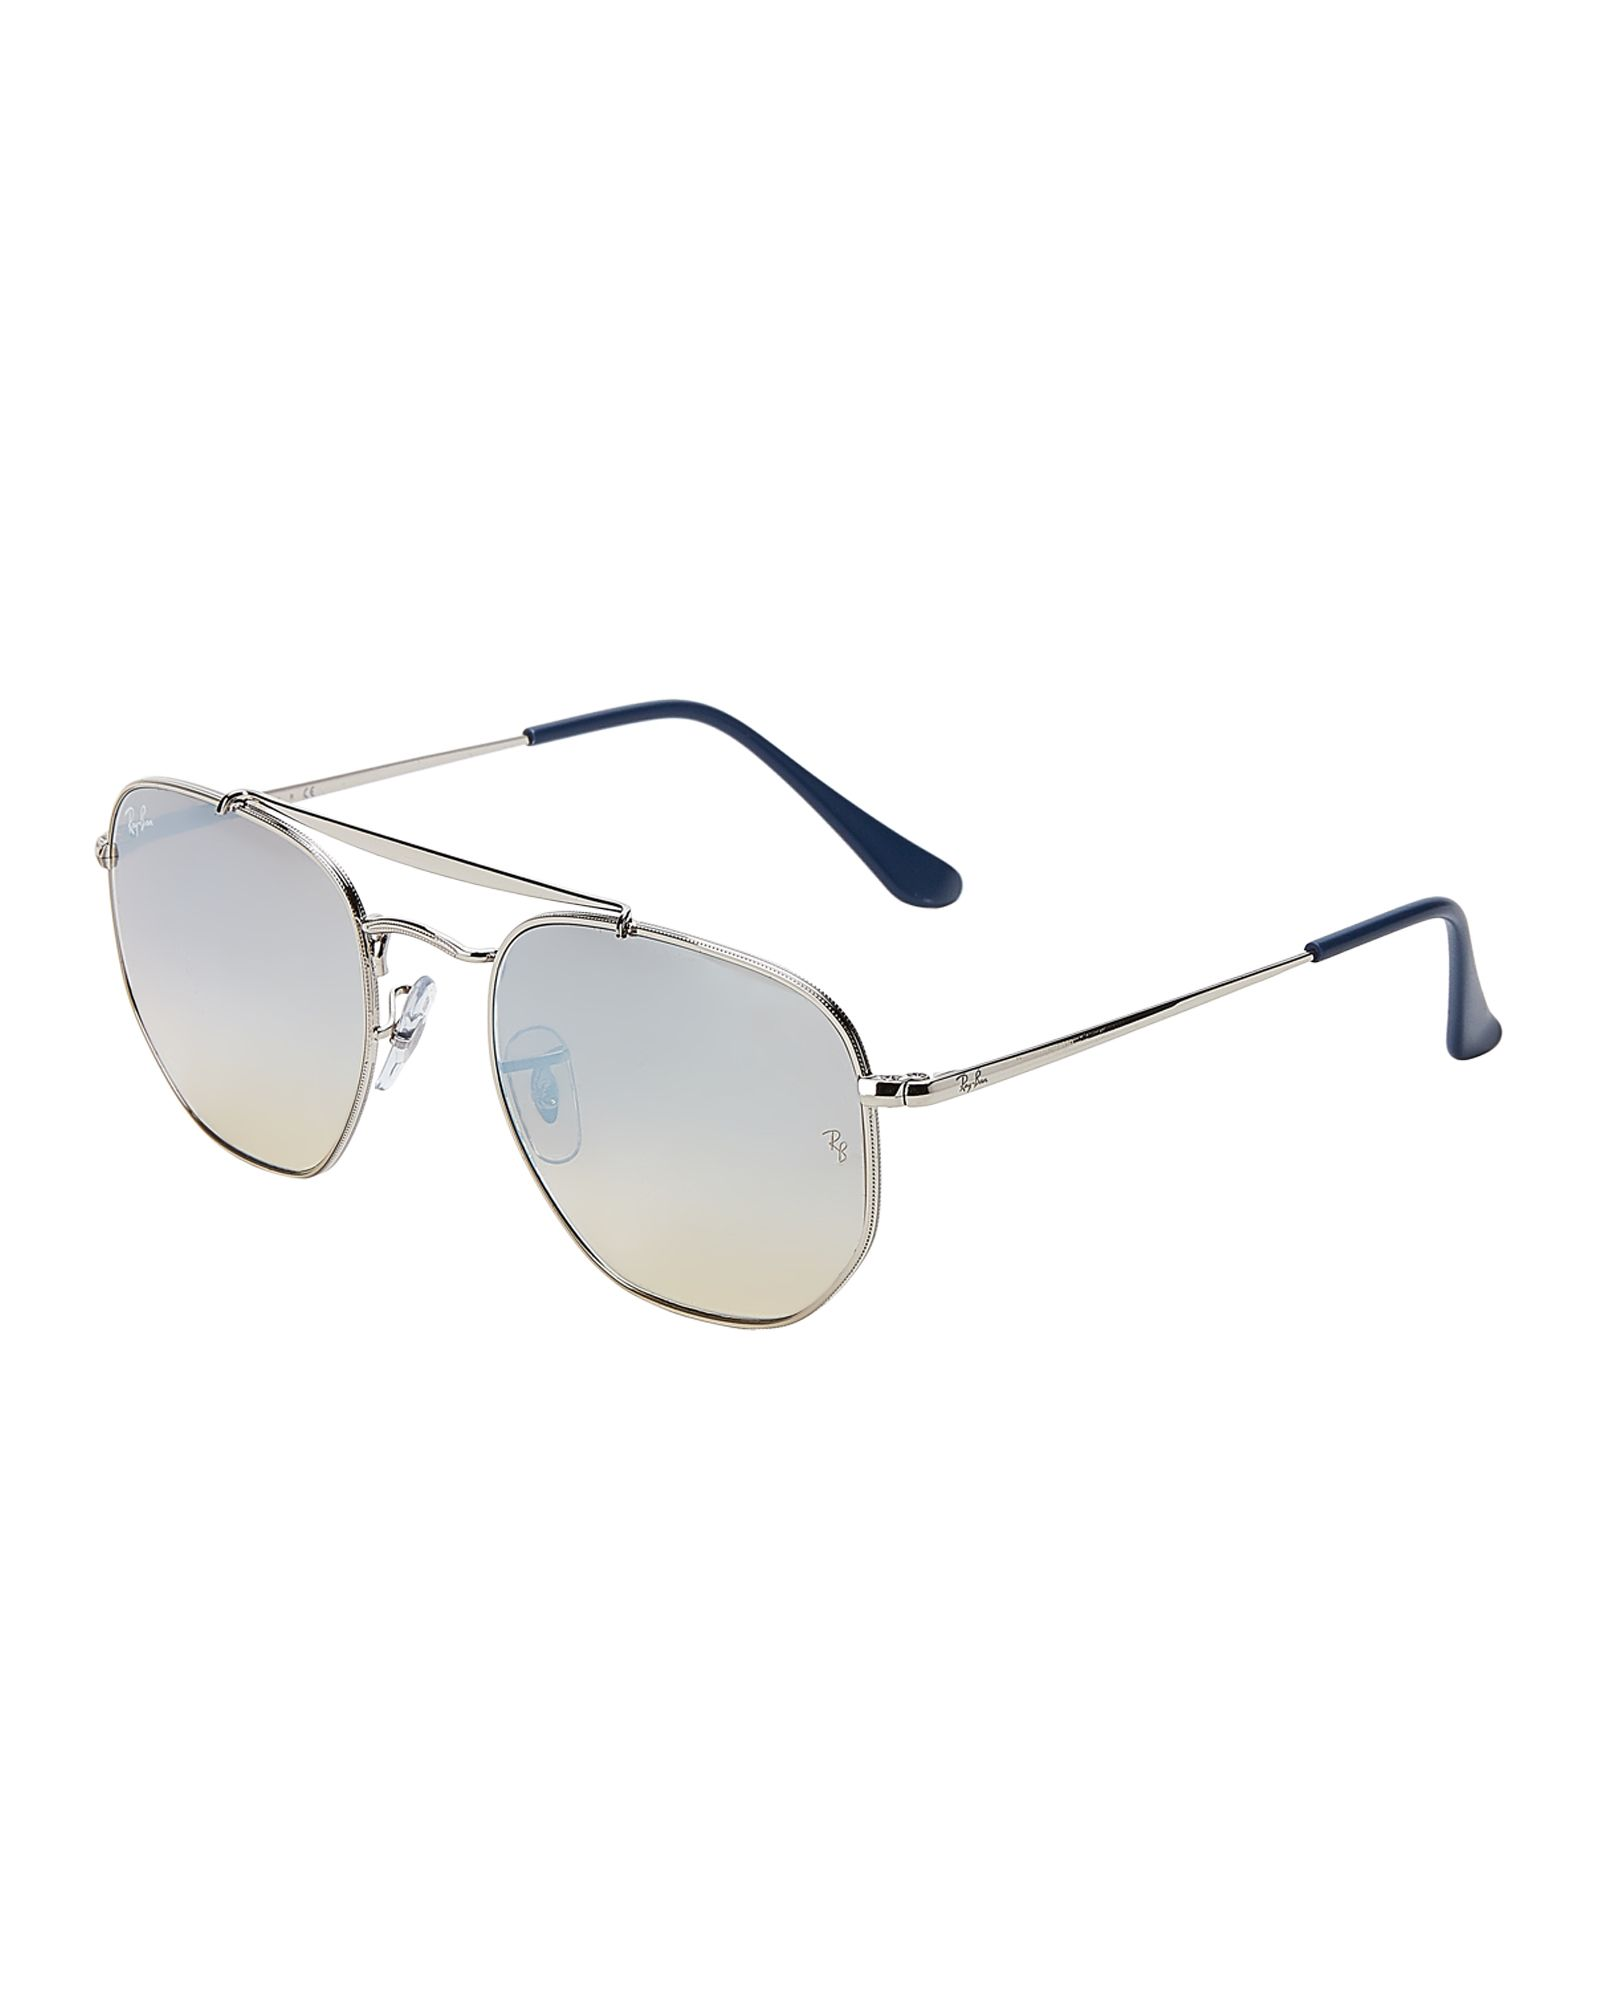 c55d6ae89 Ray-Ban RB 3648 Silver-Tone The Marshal Round Sunglasses | *Apparel ...